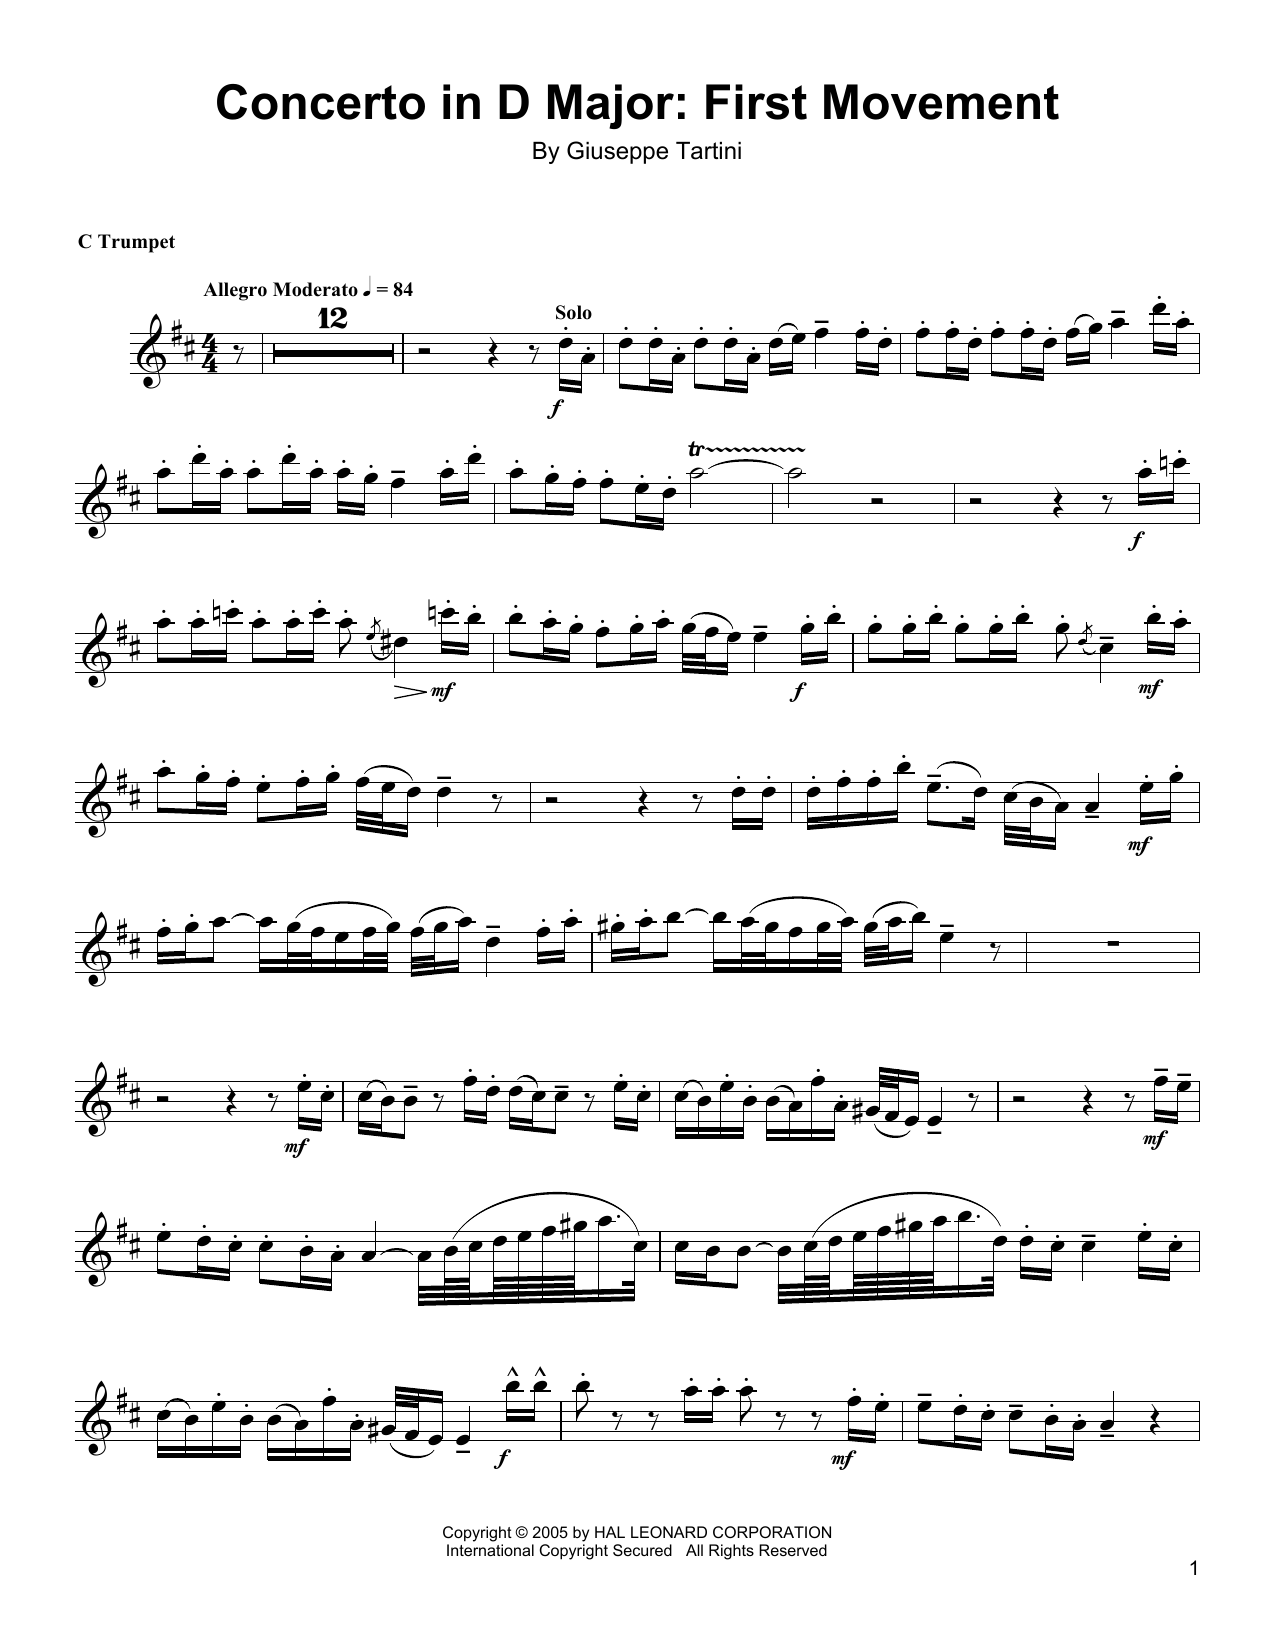 Concerto In D Major: First Movement Sheet Music